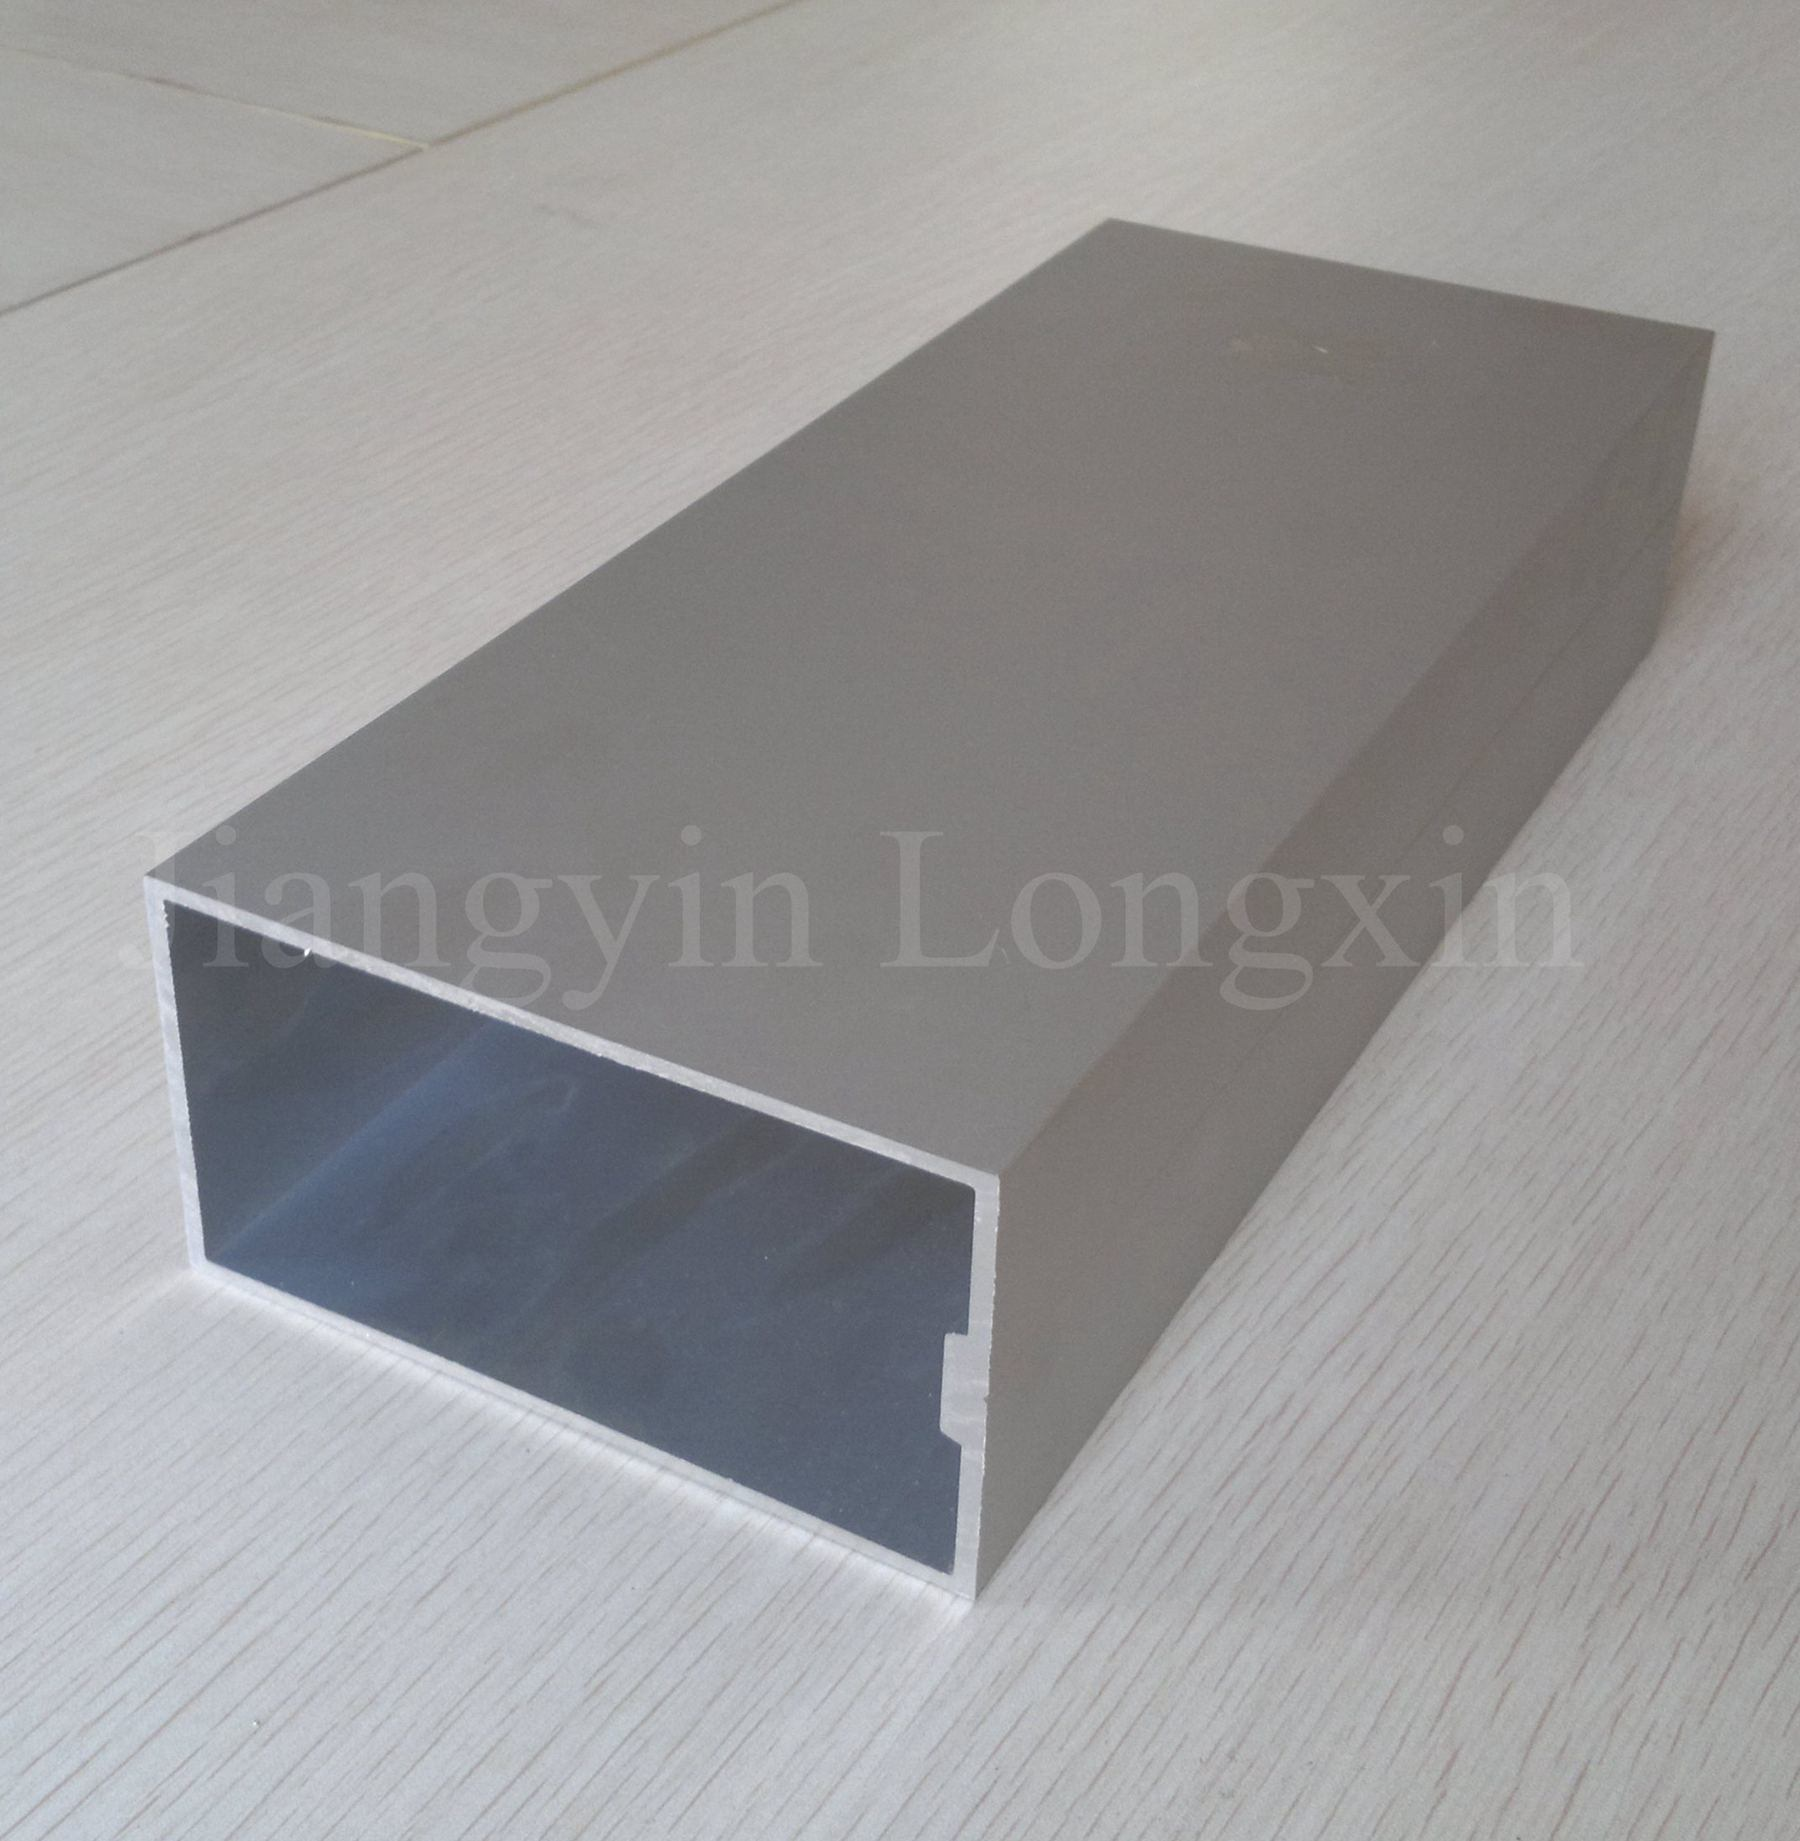 Silver Anodized Aluminum Profile of Curtain Wall